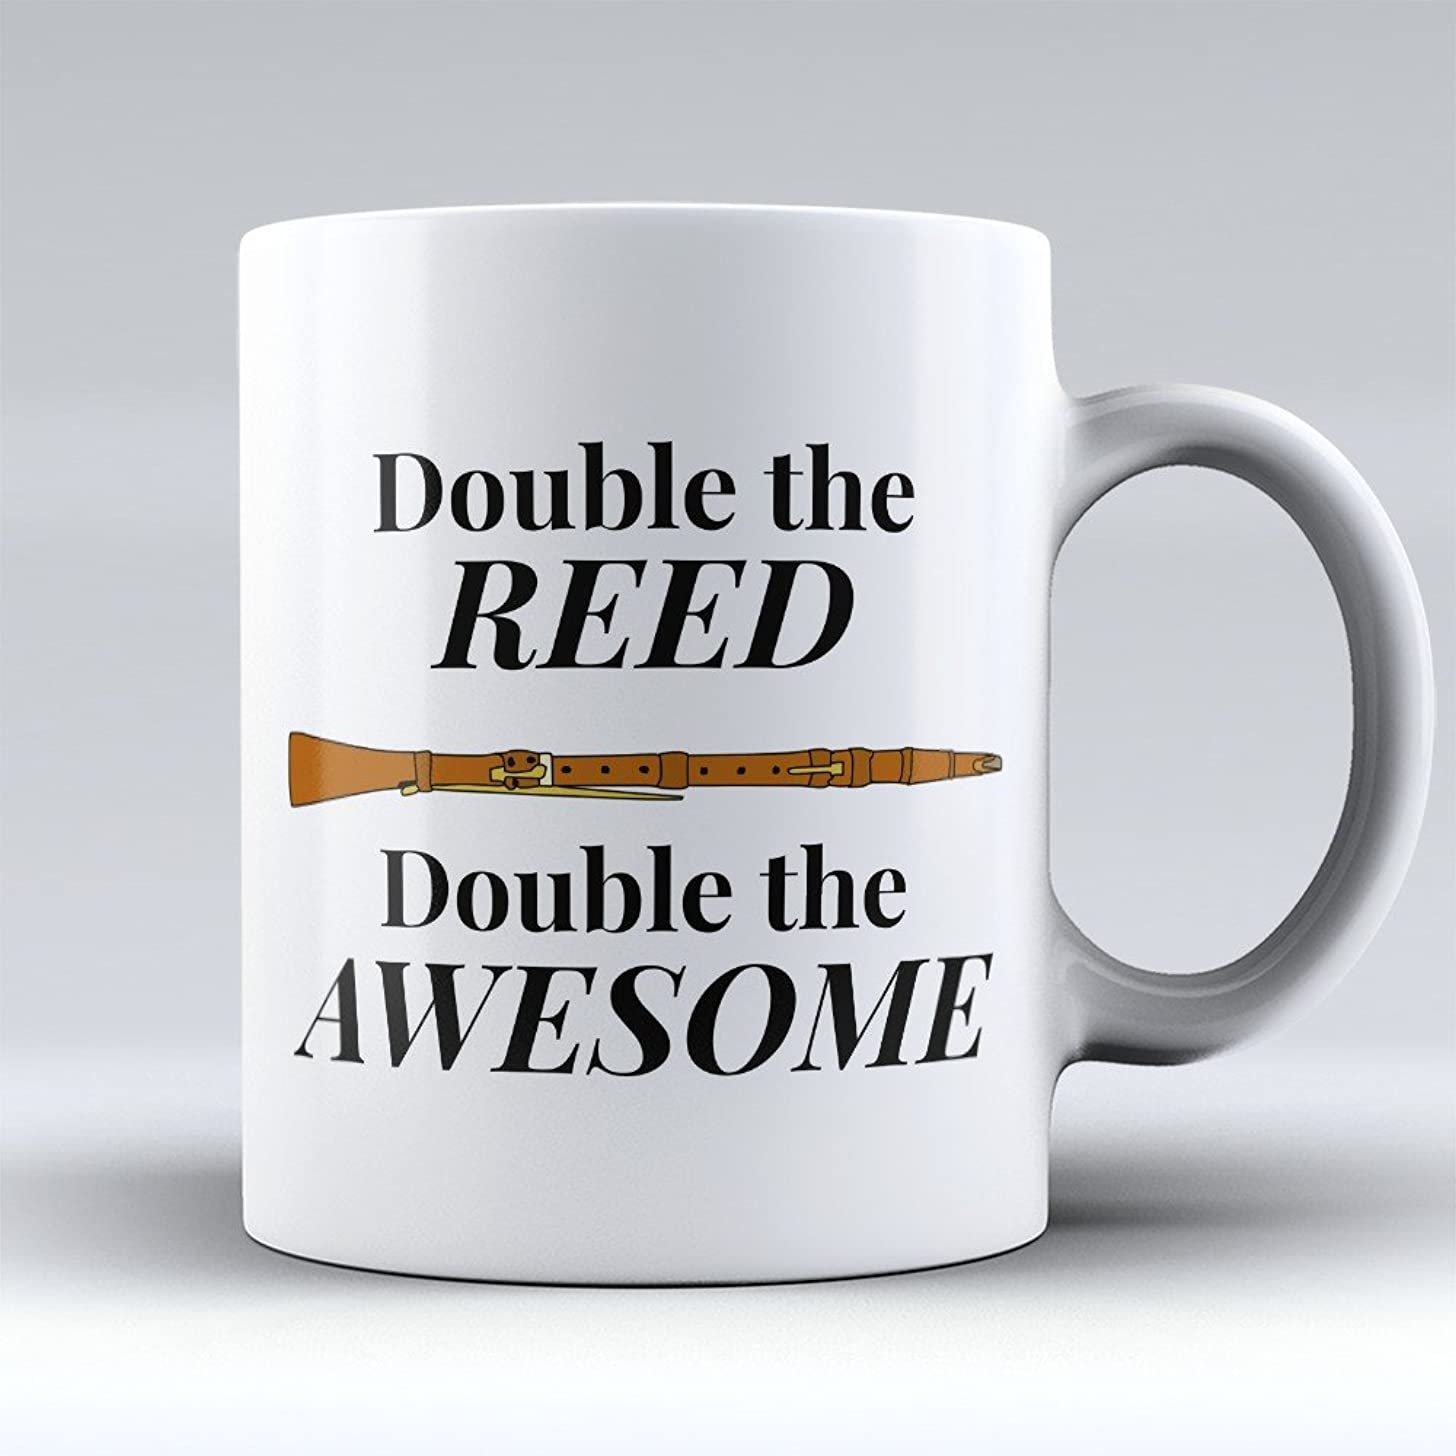 Oboe Coffee Mug - Oboe Coffee Cup - Funny Gift for Oboe Players -Double The Reed - Best Present for Oboe Players - 11oz